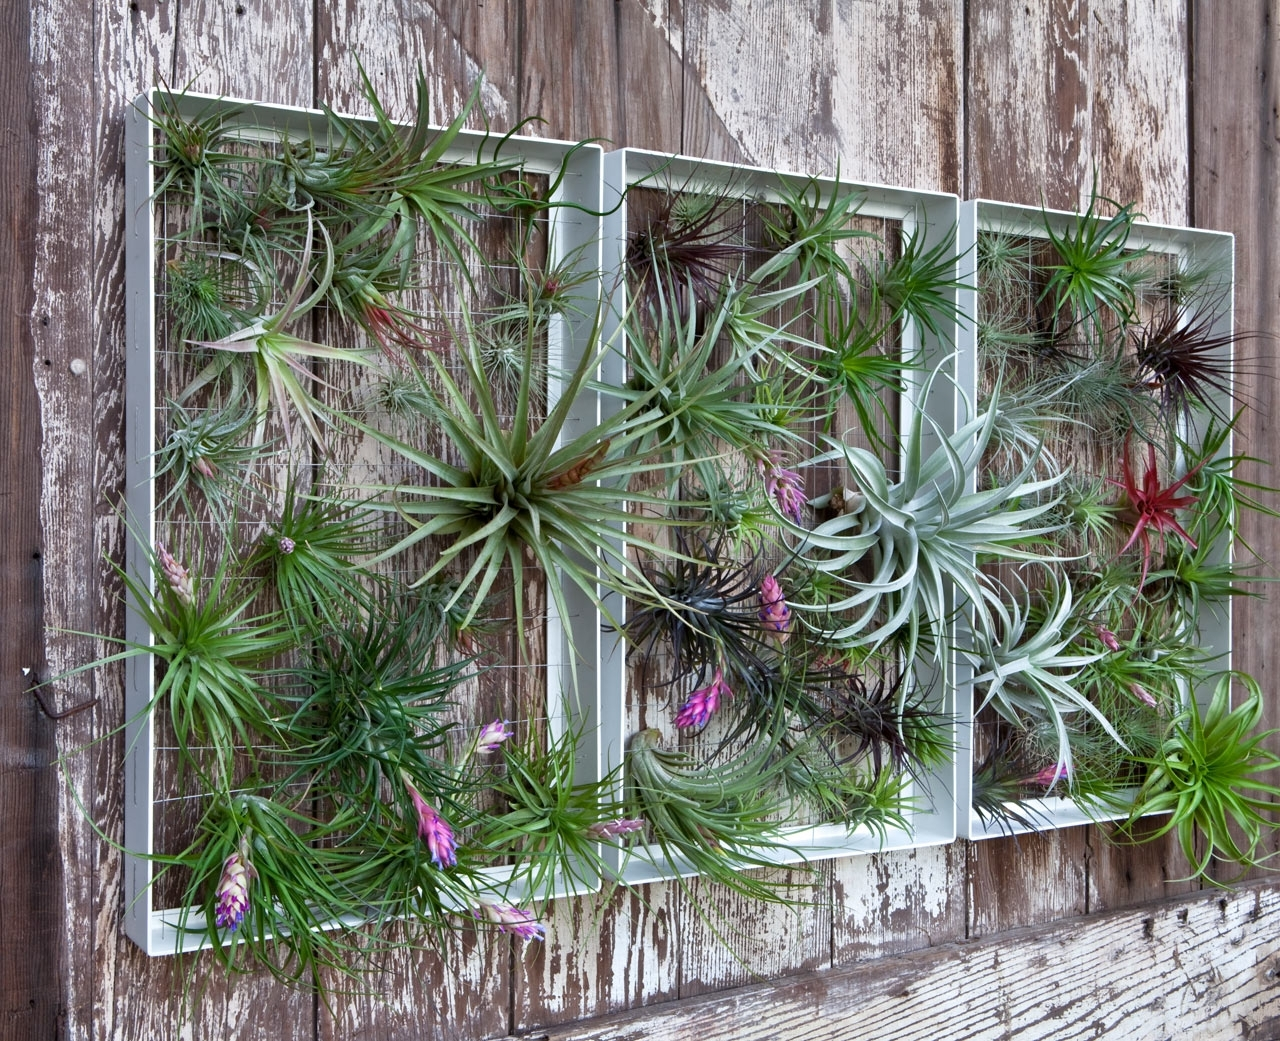 Living Wall Art Vertical Garden Framesairplantman – Design Milk With Regard To 2017 Living Wall Art (View 7 of 20)